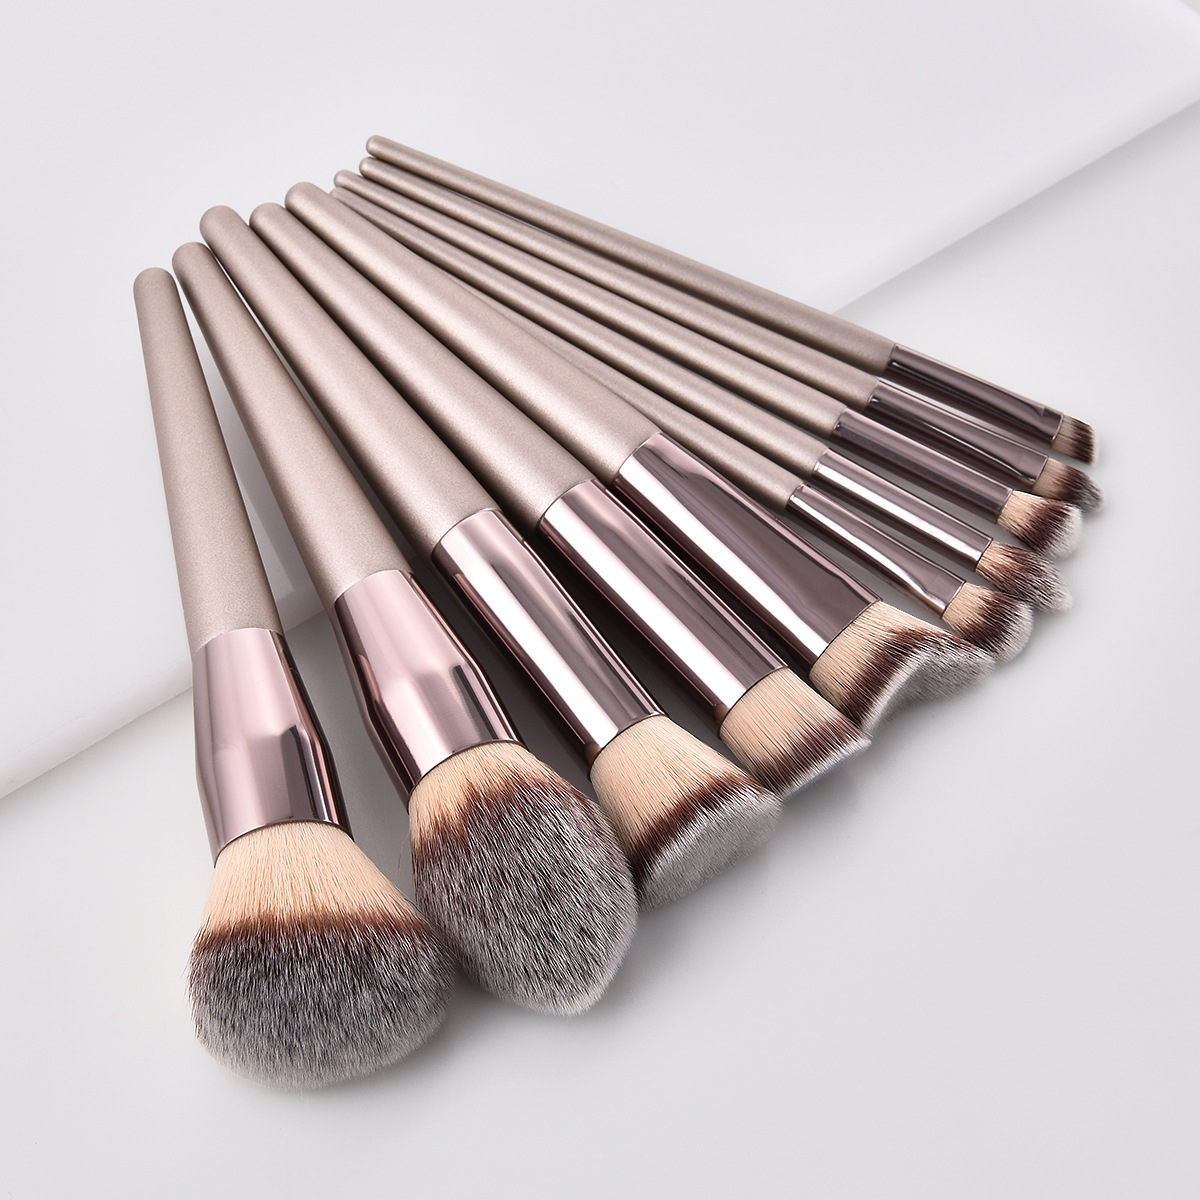 Hot Sale Luxury Champagne Makeup Brushes Set For Foundation Powder